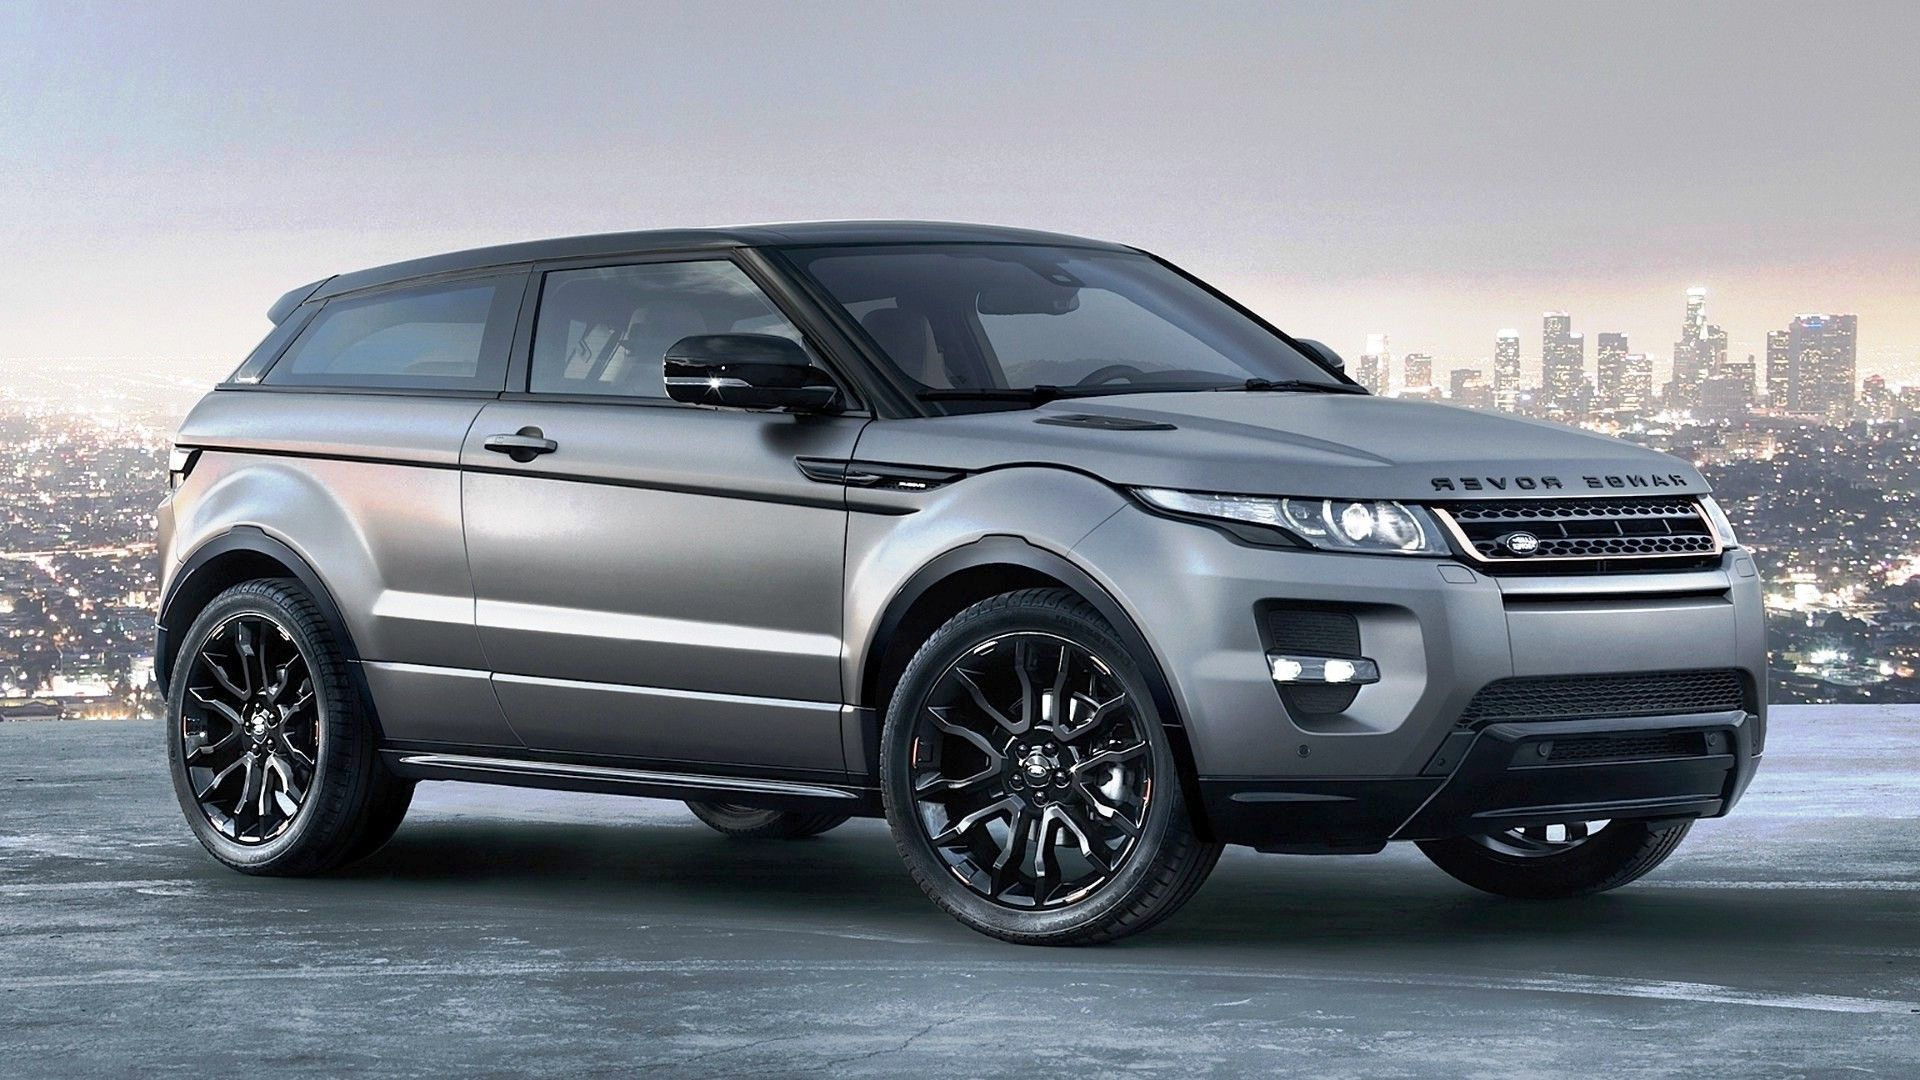 2016 land rover range rover supercharged turbocharged diesel suv modification sports